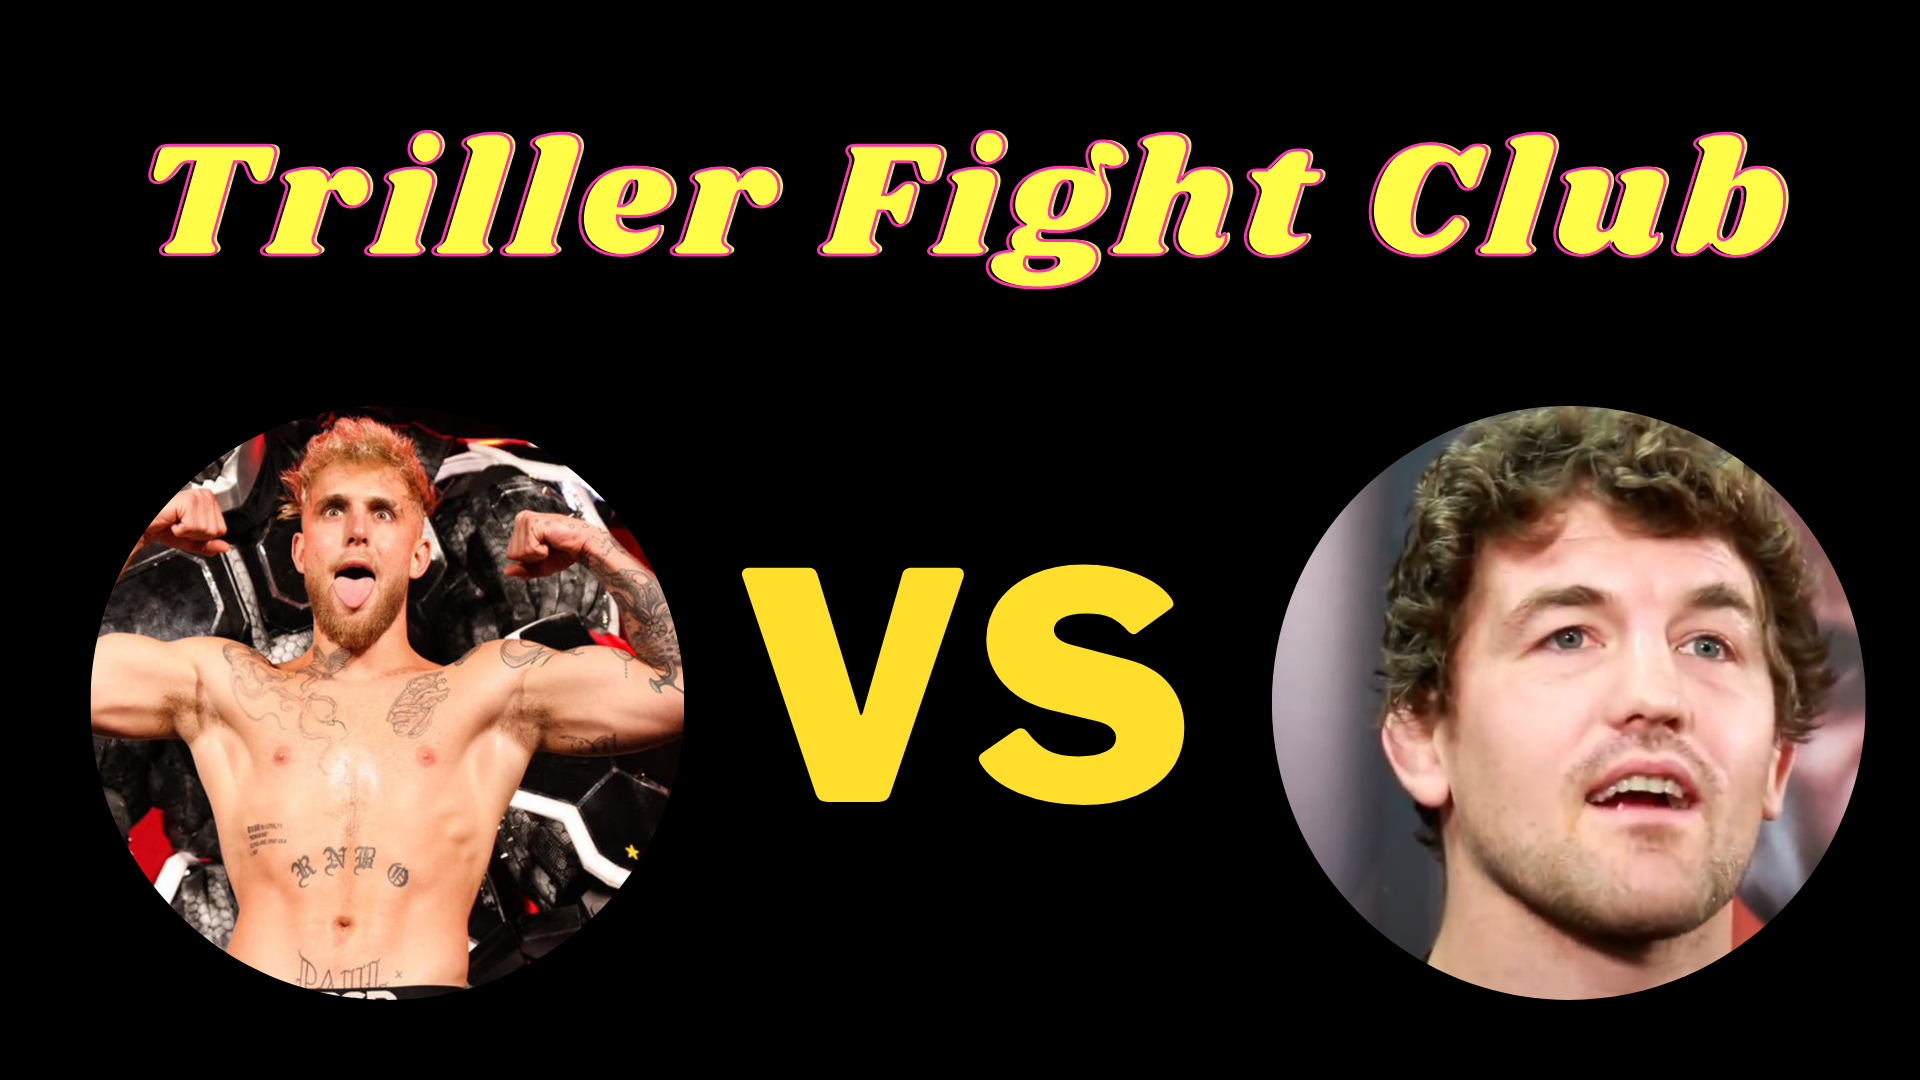 triller fight club - the worst fighting event I ever saw